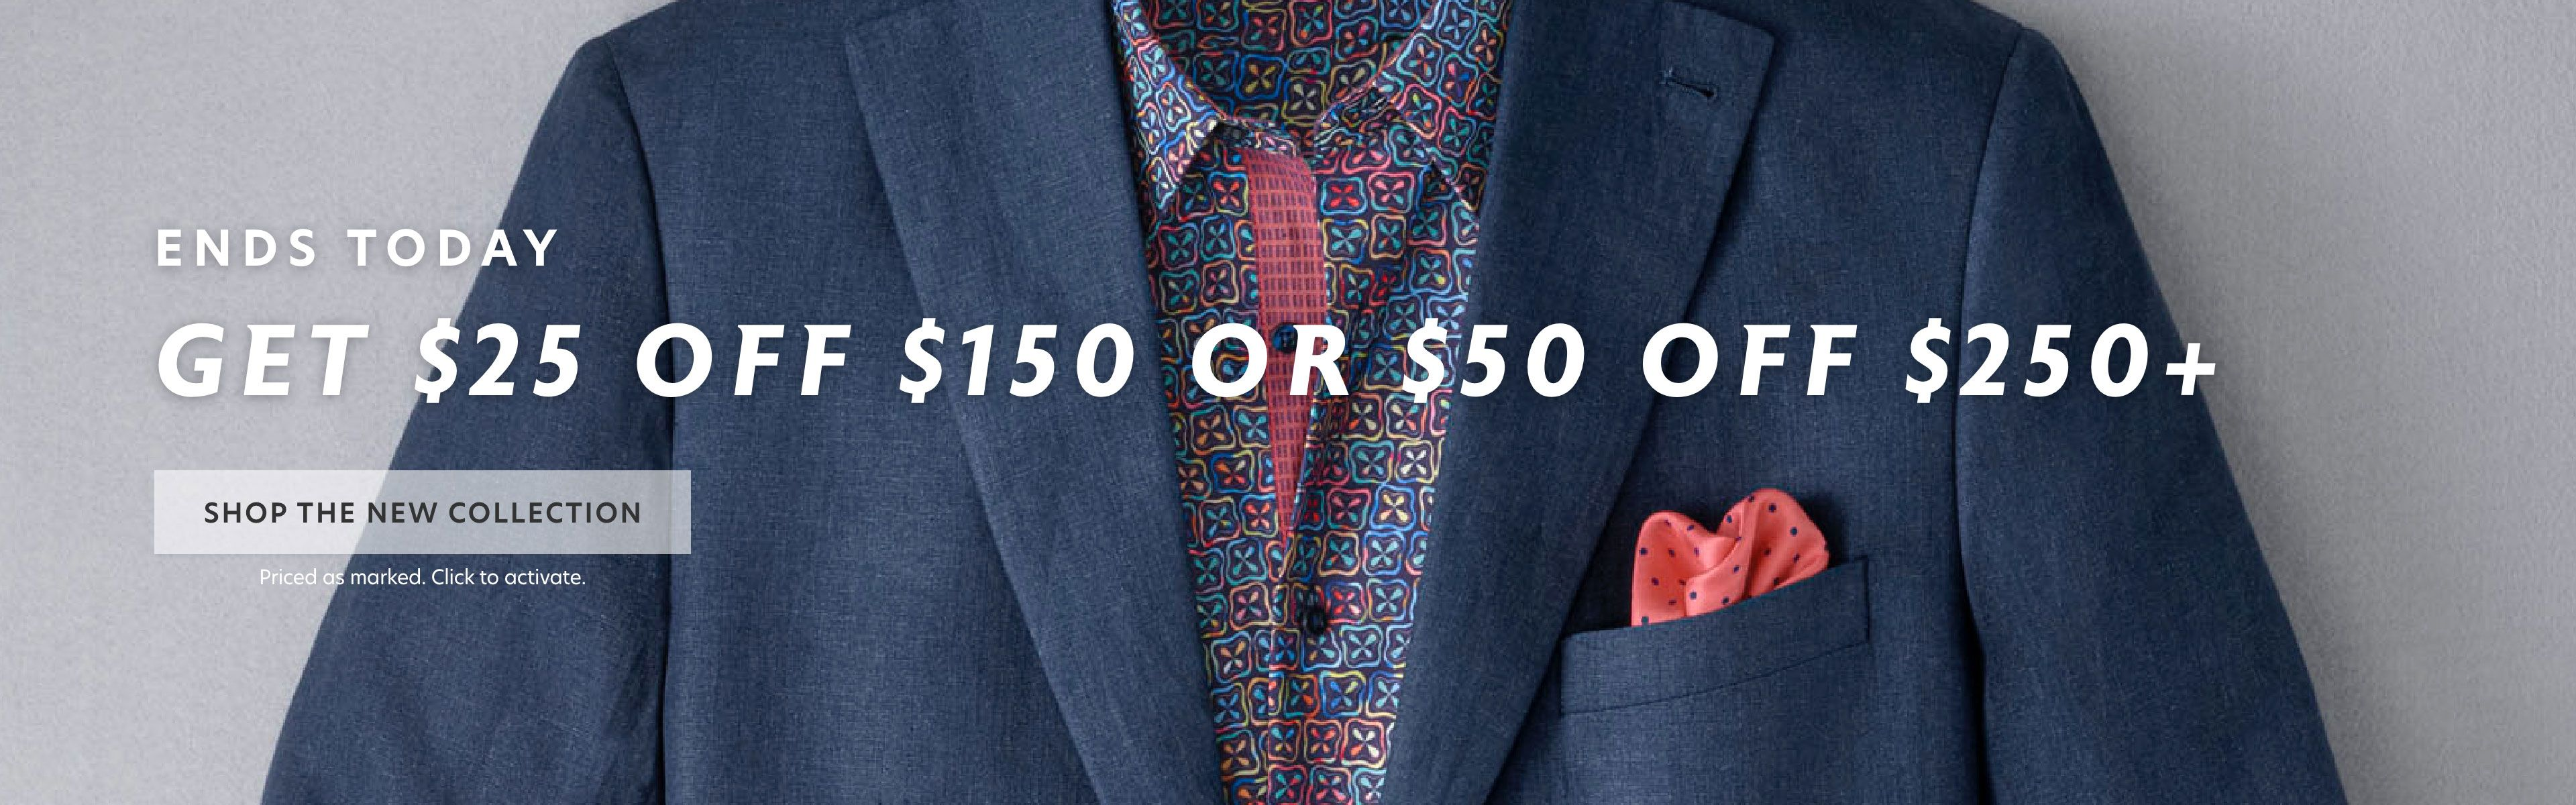 Ends Today: $25 Off $150 or $50 Off $250